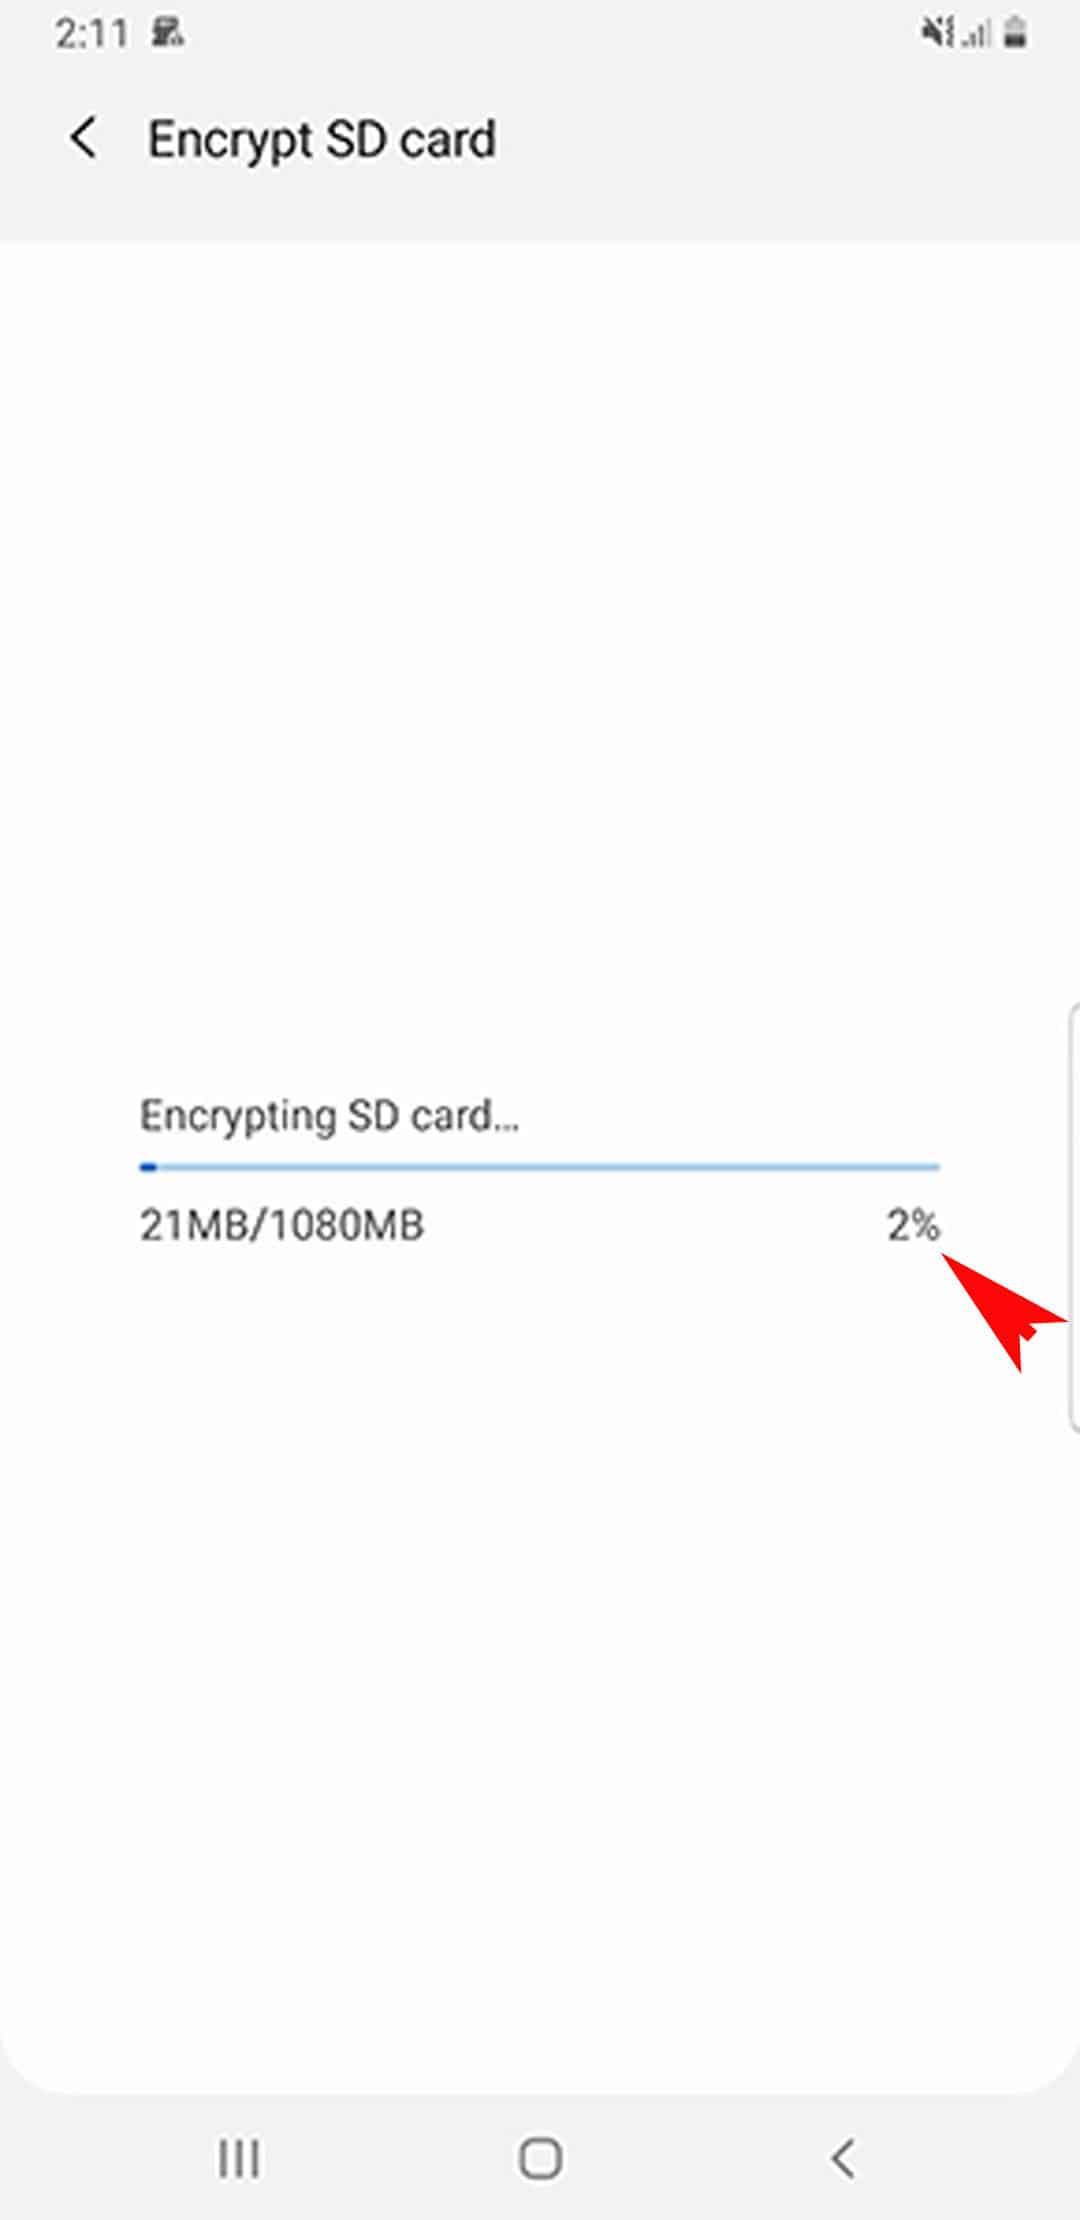 encrypt decrypt sd card galaxy s20 - biometrics and security